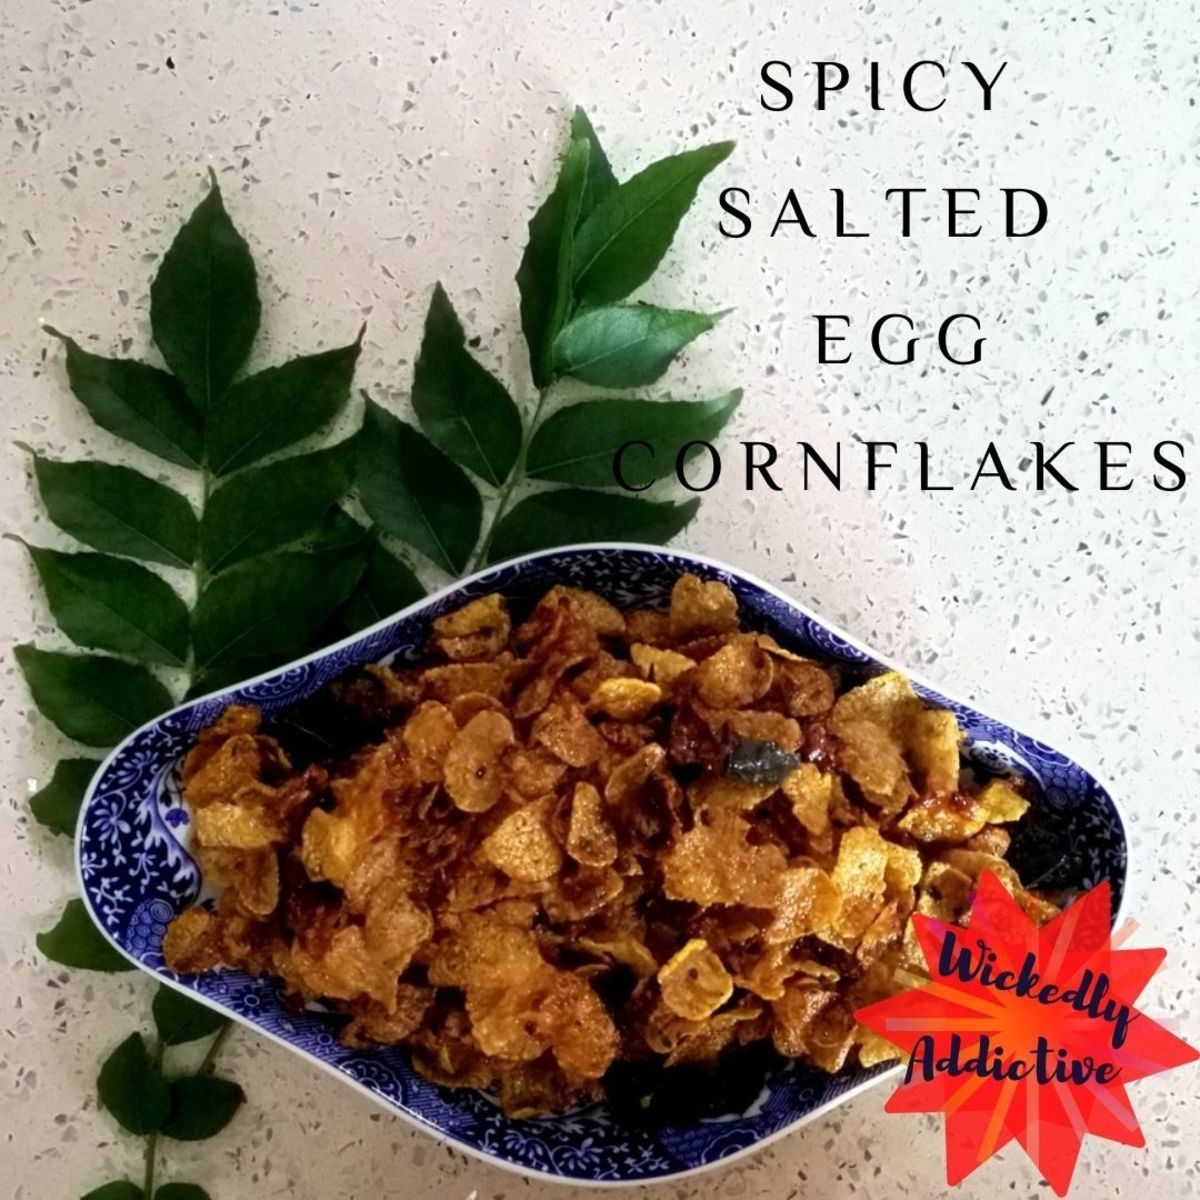 Salted Egg Recipe: Spicy Salted Egg Cornflakes